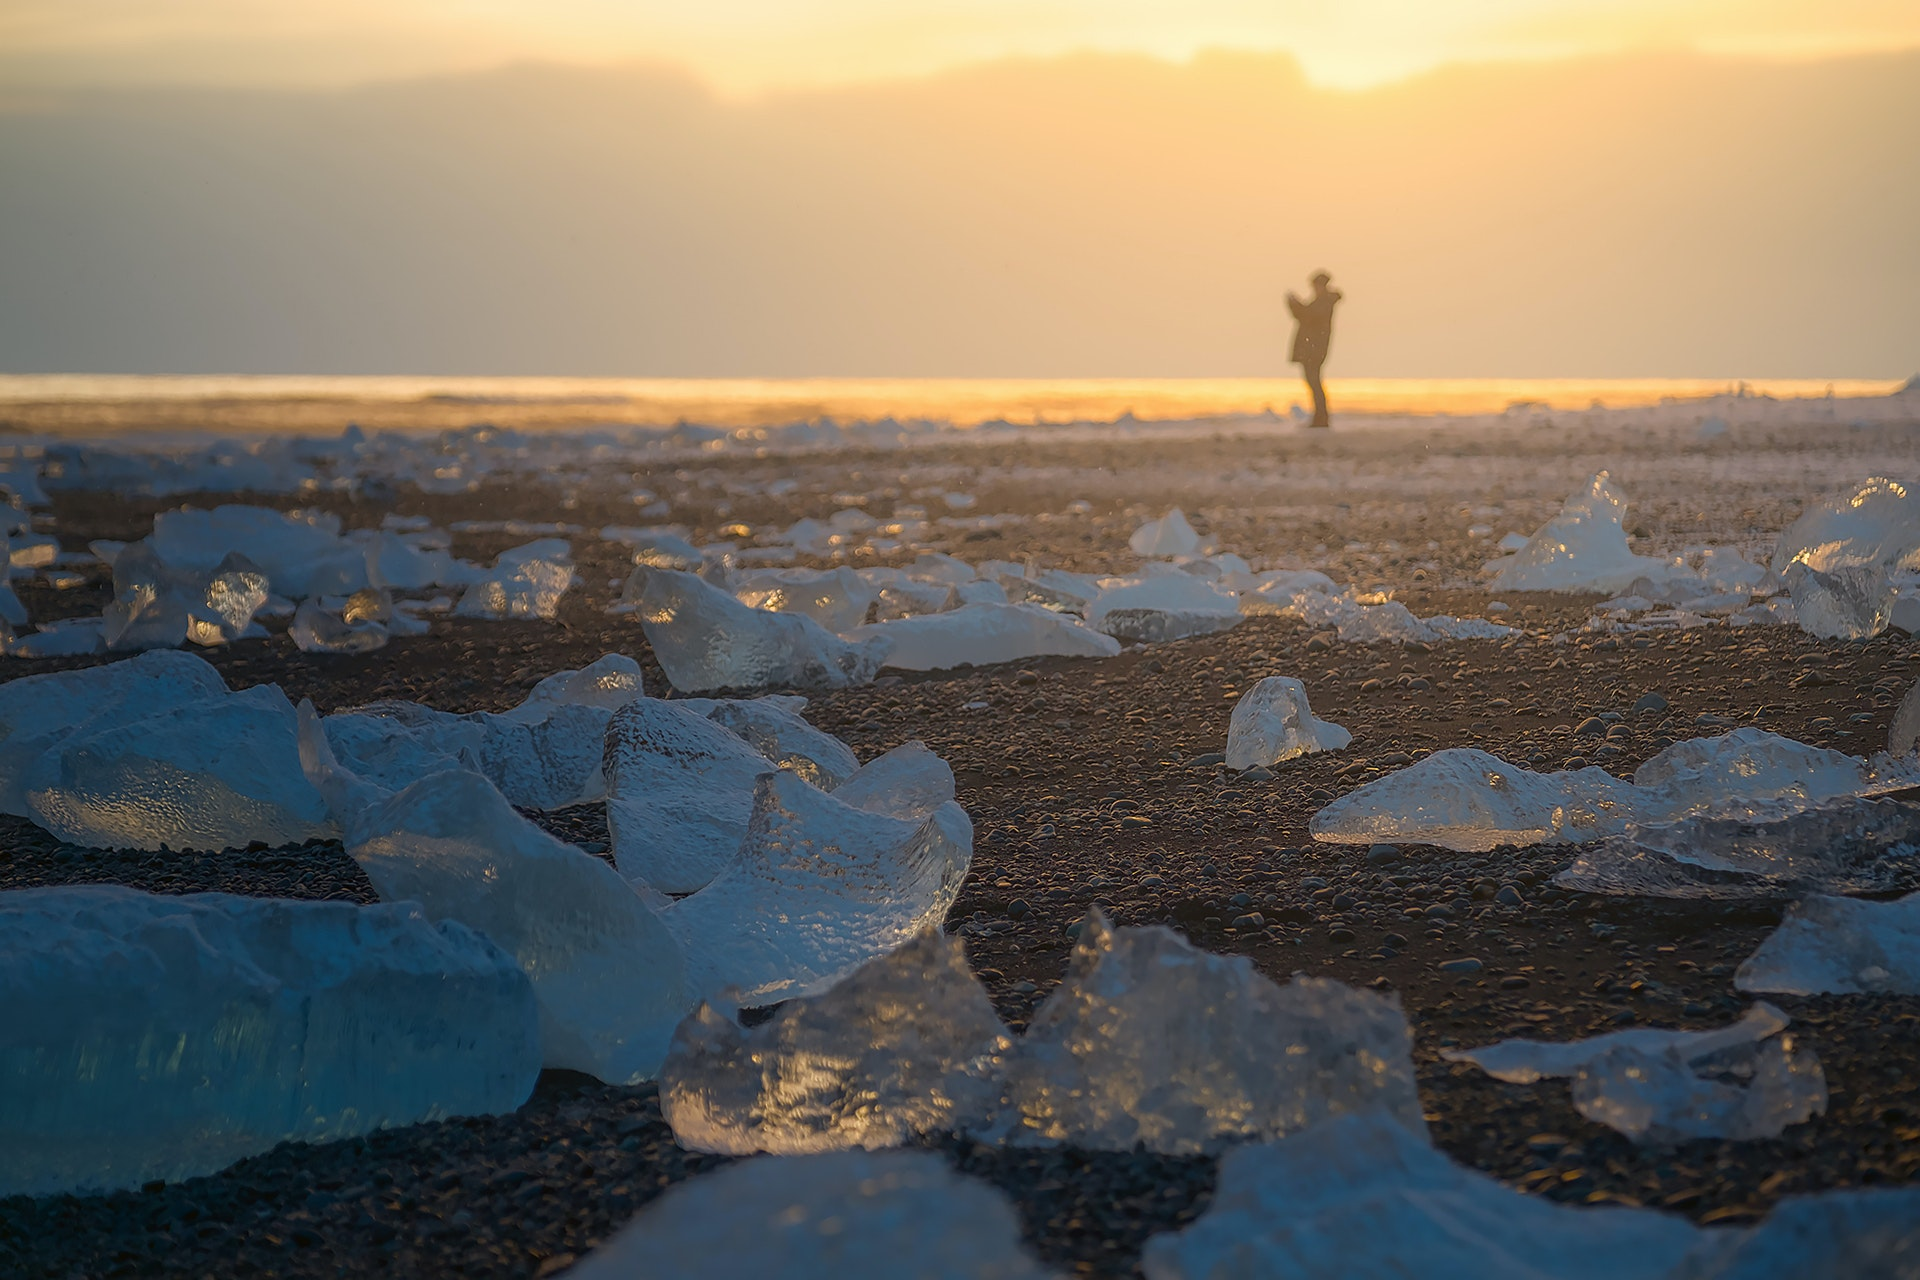 ICELAND_Jökulsárlón_ice_diamond_beach_by_maria_sahai